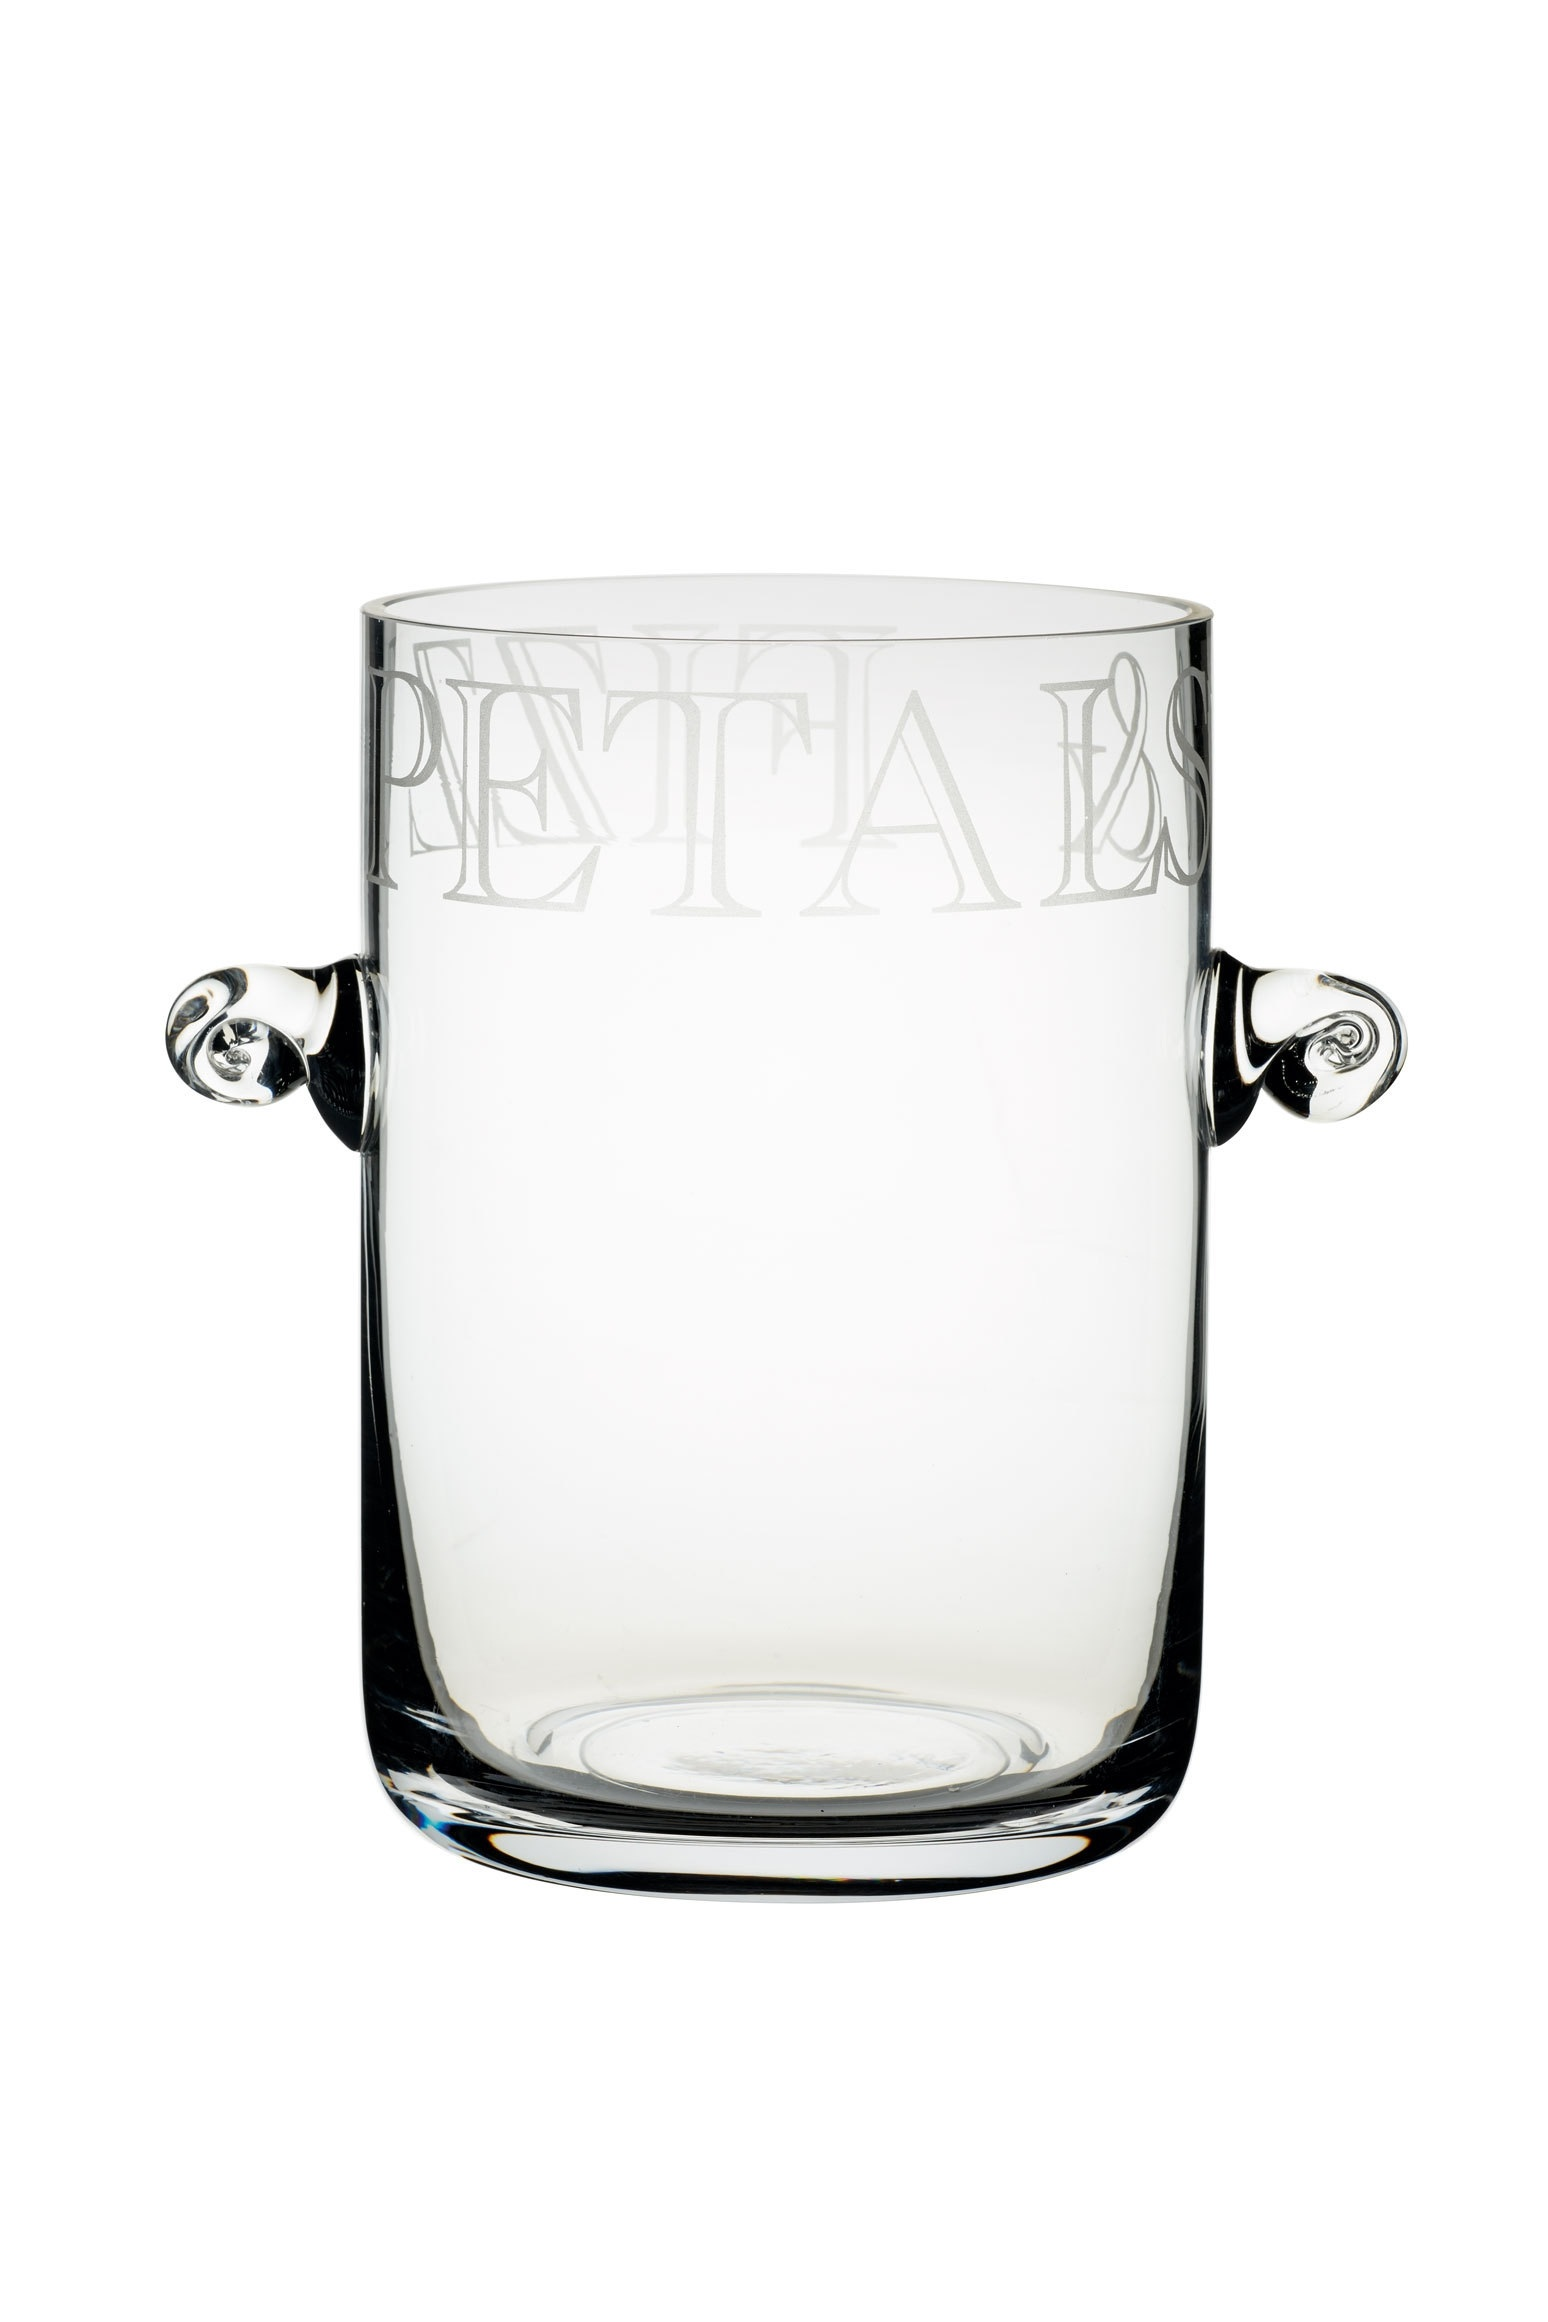 Glassware Drinking Artesà Glass Ice Bucket Vase Glassware Drinking